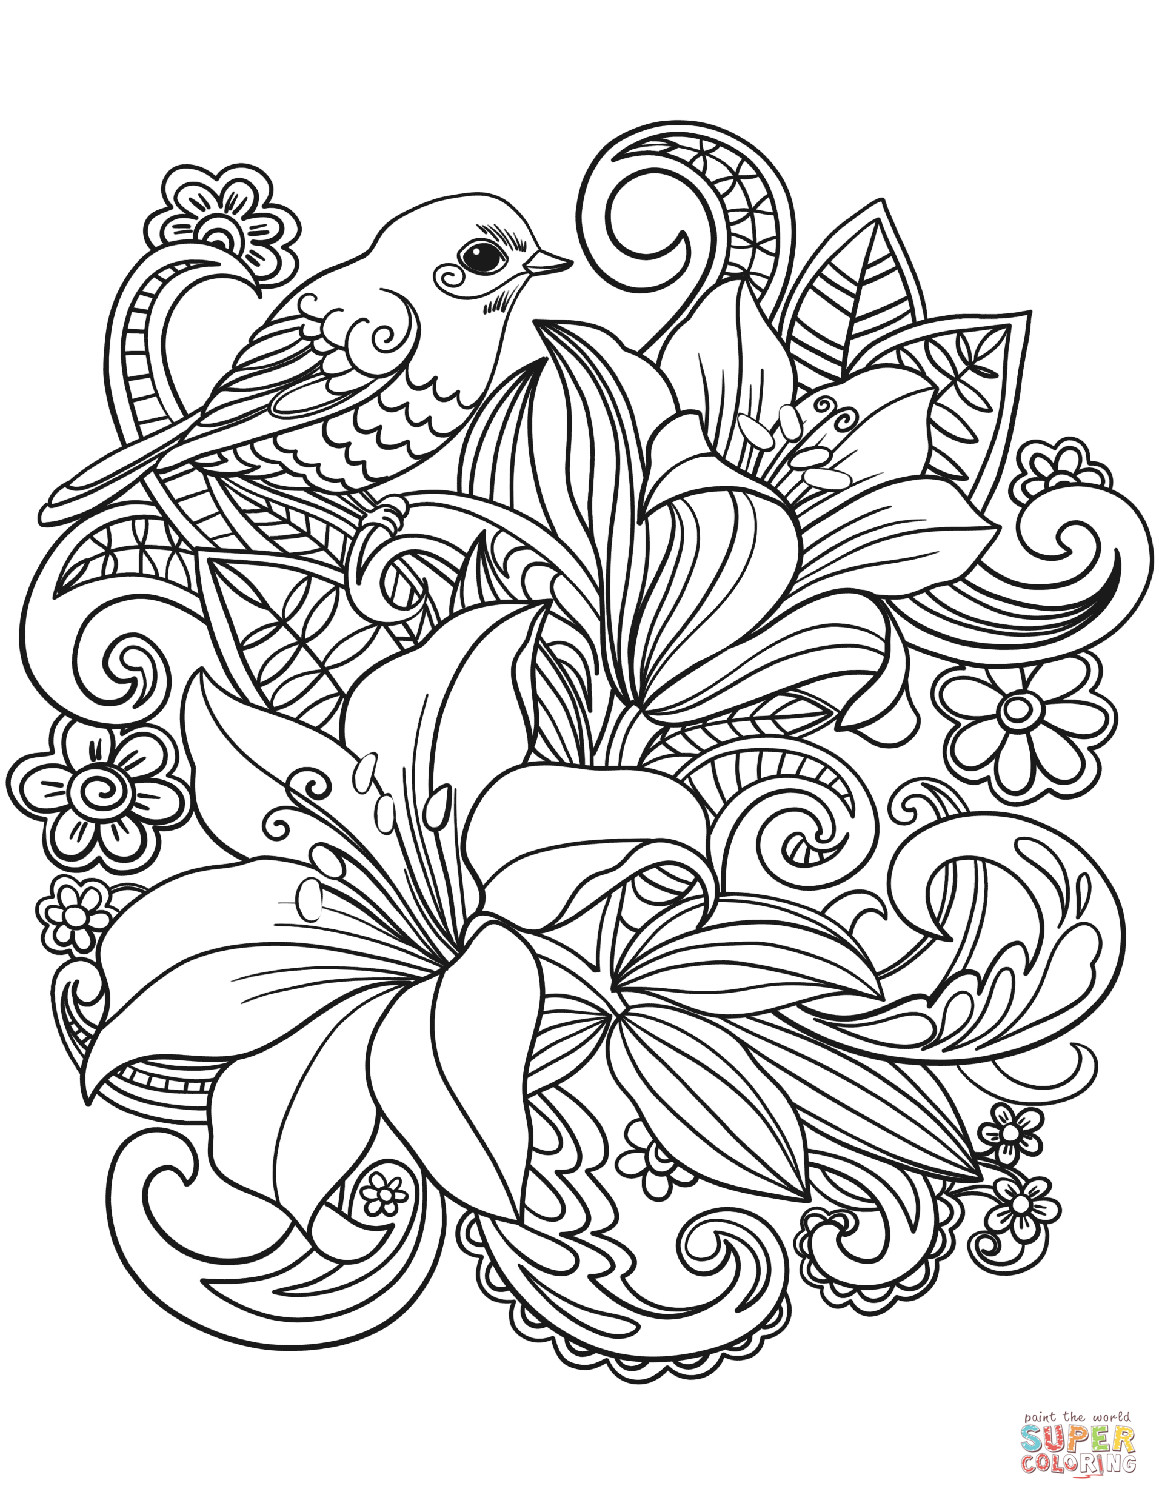 Best ideas about Free Printable Of Roses Coloring Pages For Girls Pinterest. . Save or Pin Skylark and Flowers coloring page Now.